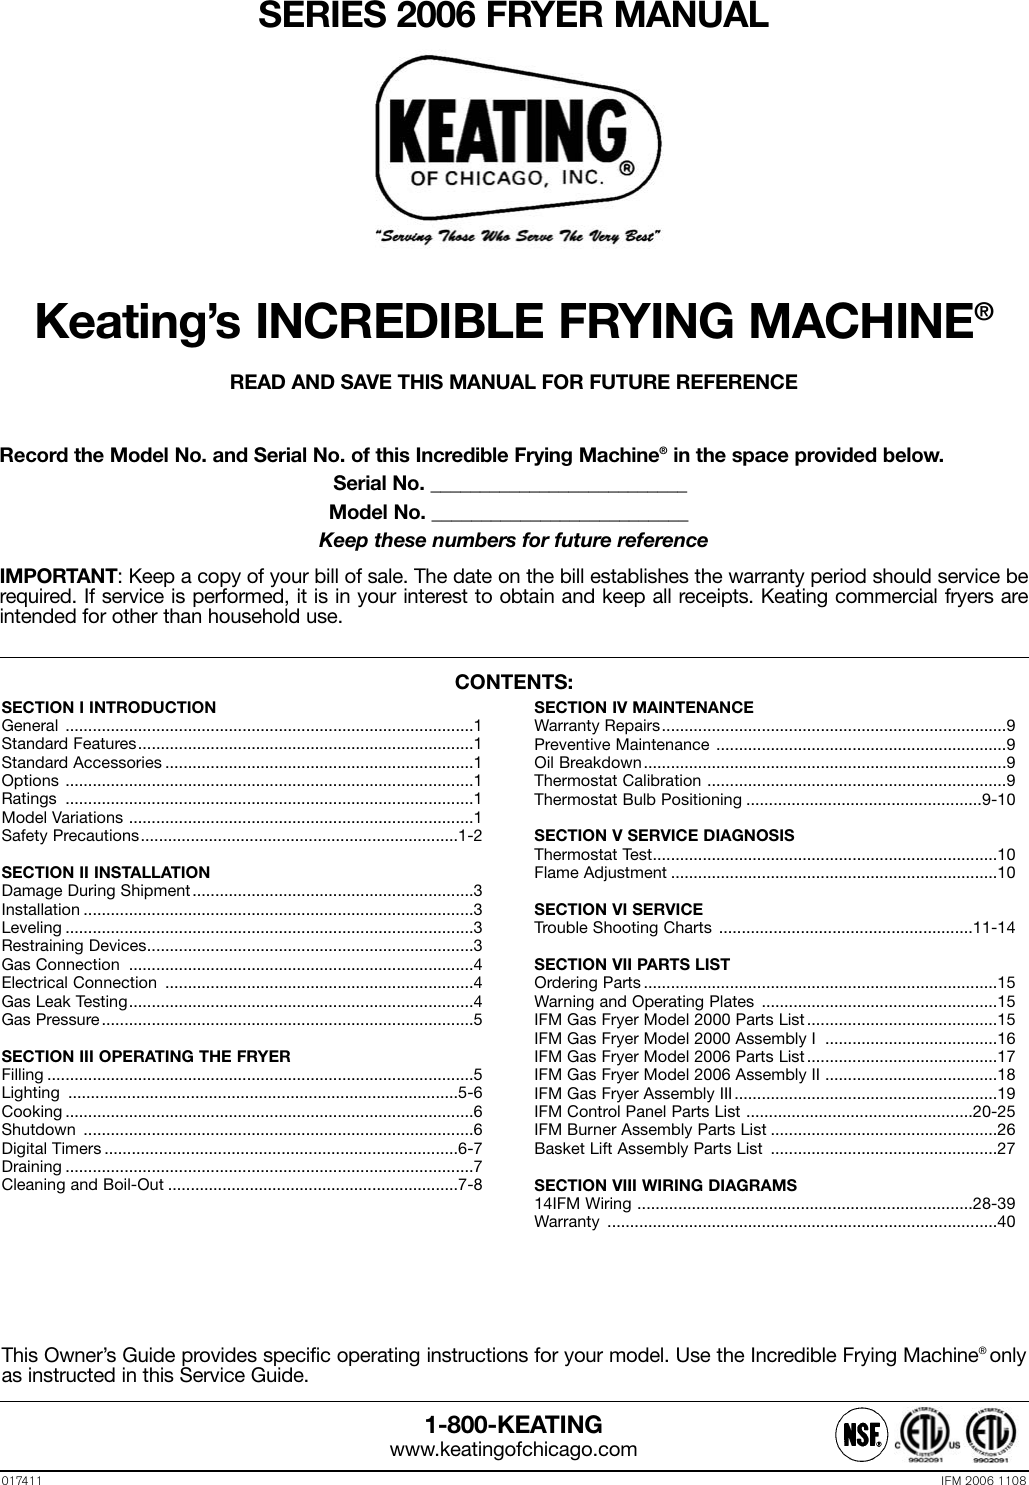 Keating 034357 High Limit Manual Reset with R